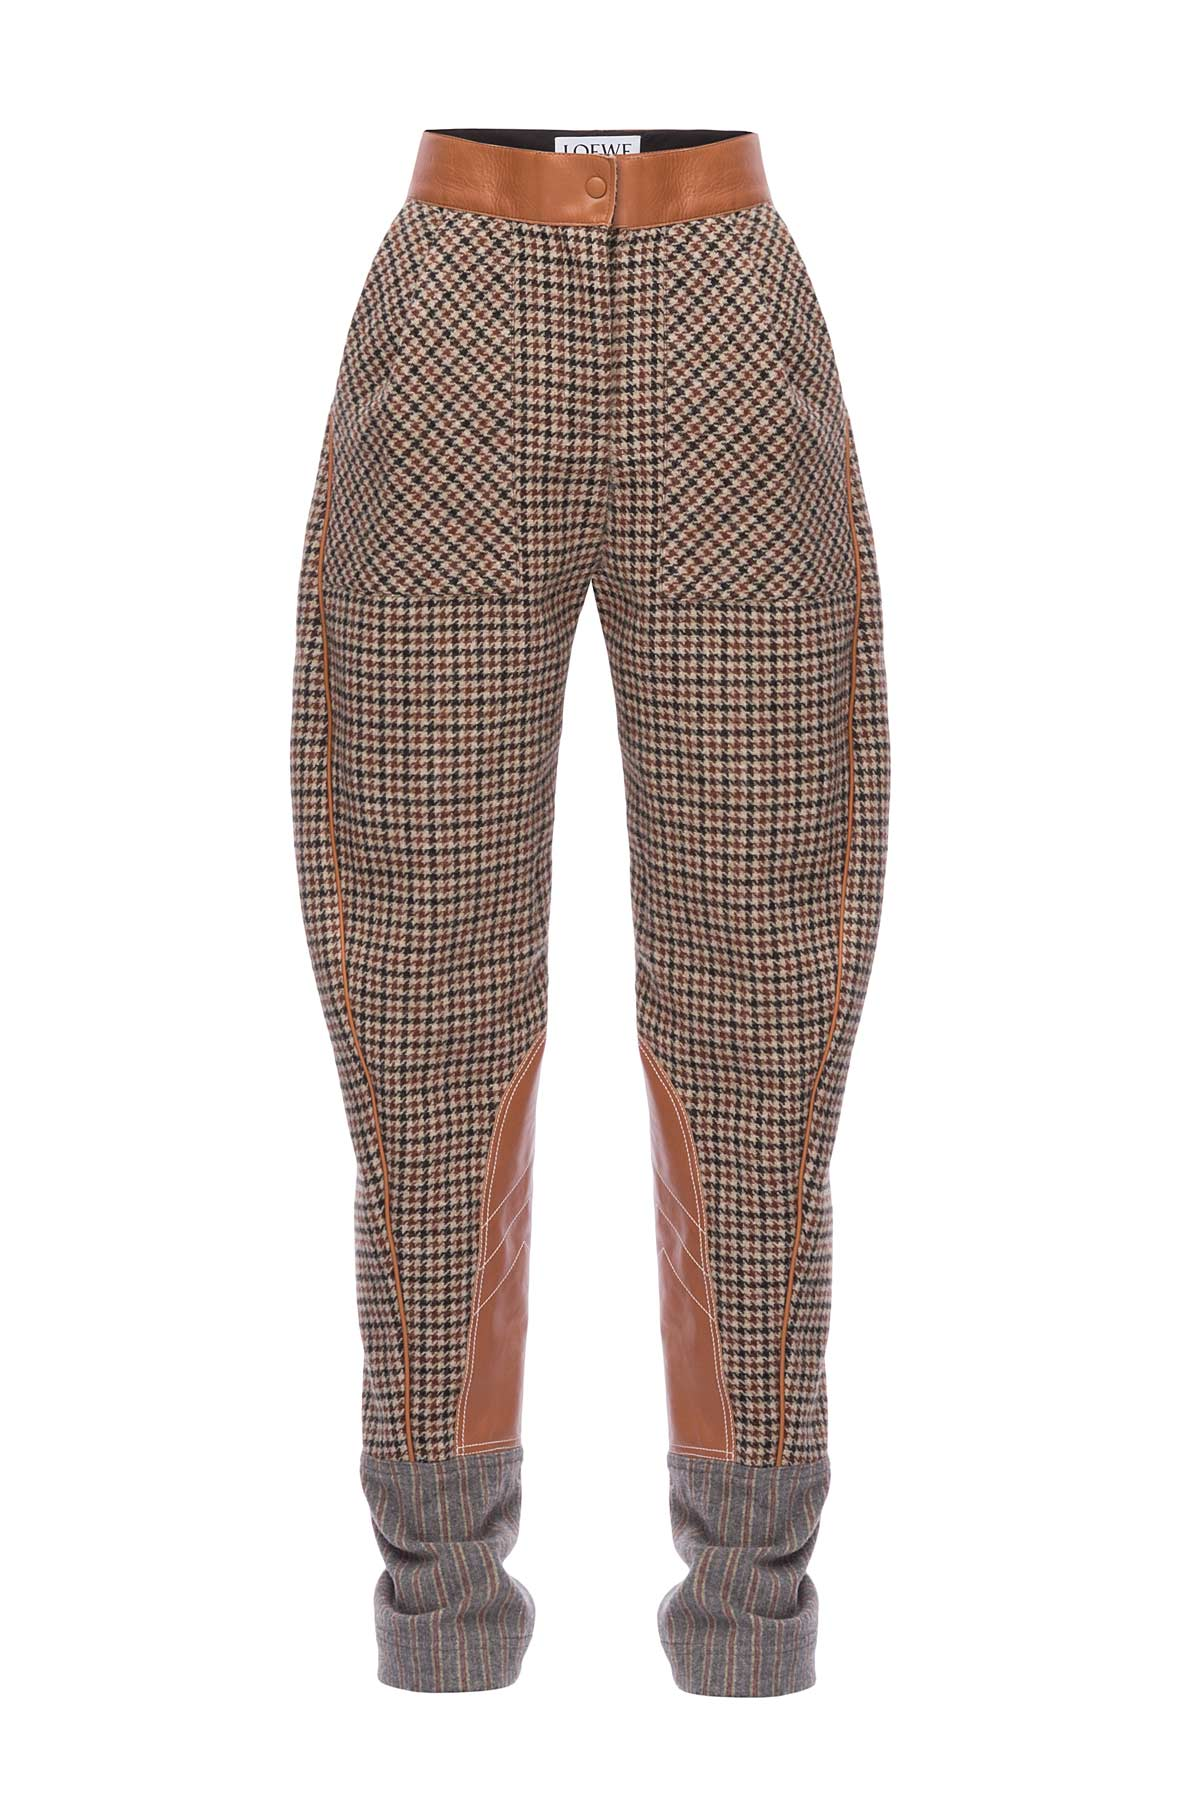 LOEWE Check Carrot Trousers Brown/Tan front